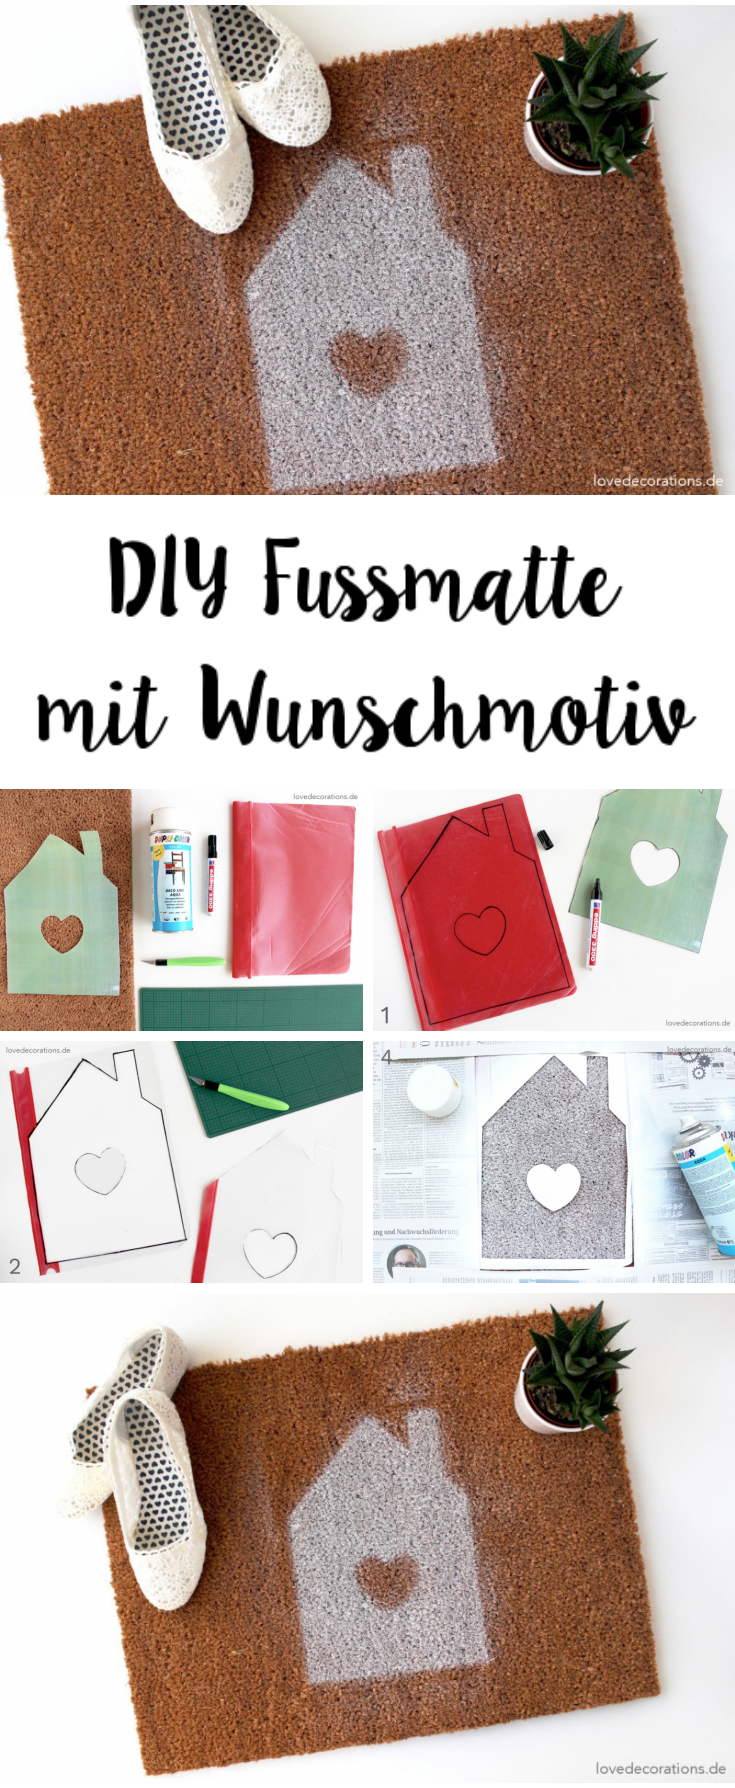 diy fu matte mit wunschmotiv und diese komischen tage hallo herbst blogparade get crafty. Black Bedroom Furniture Sets. Home Design Ideas